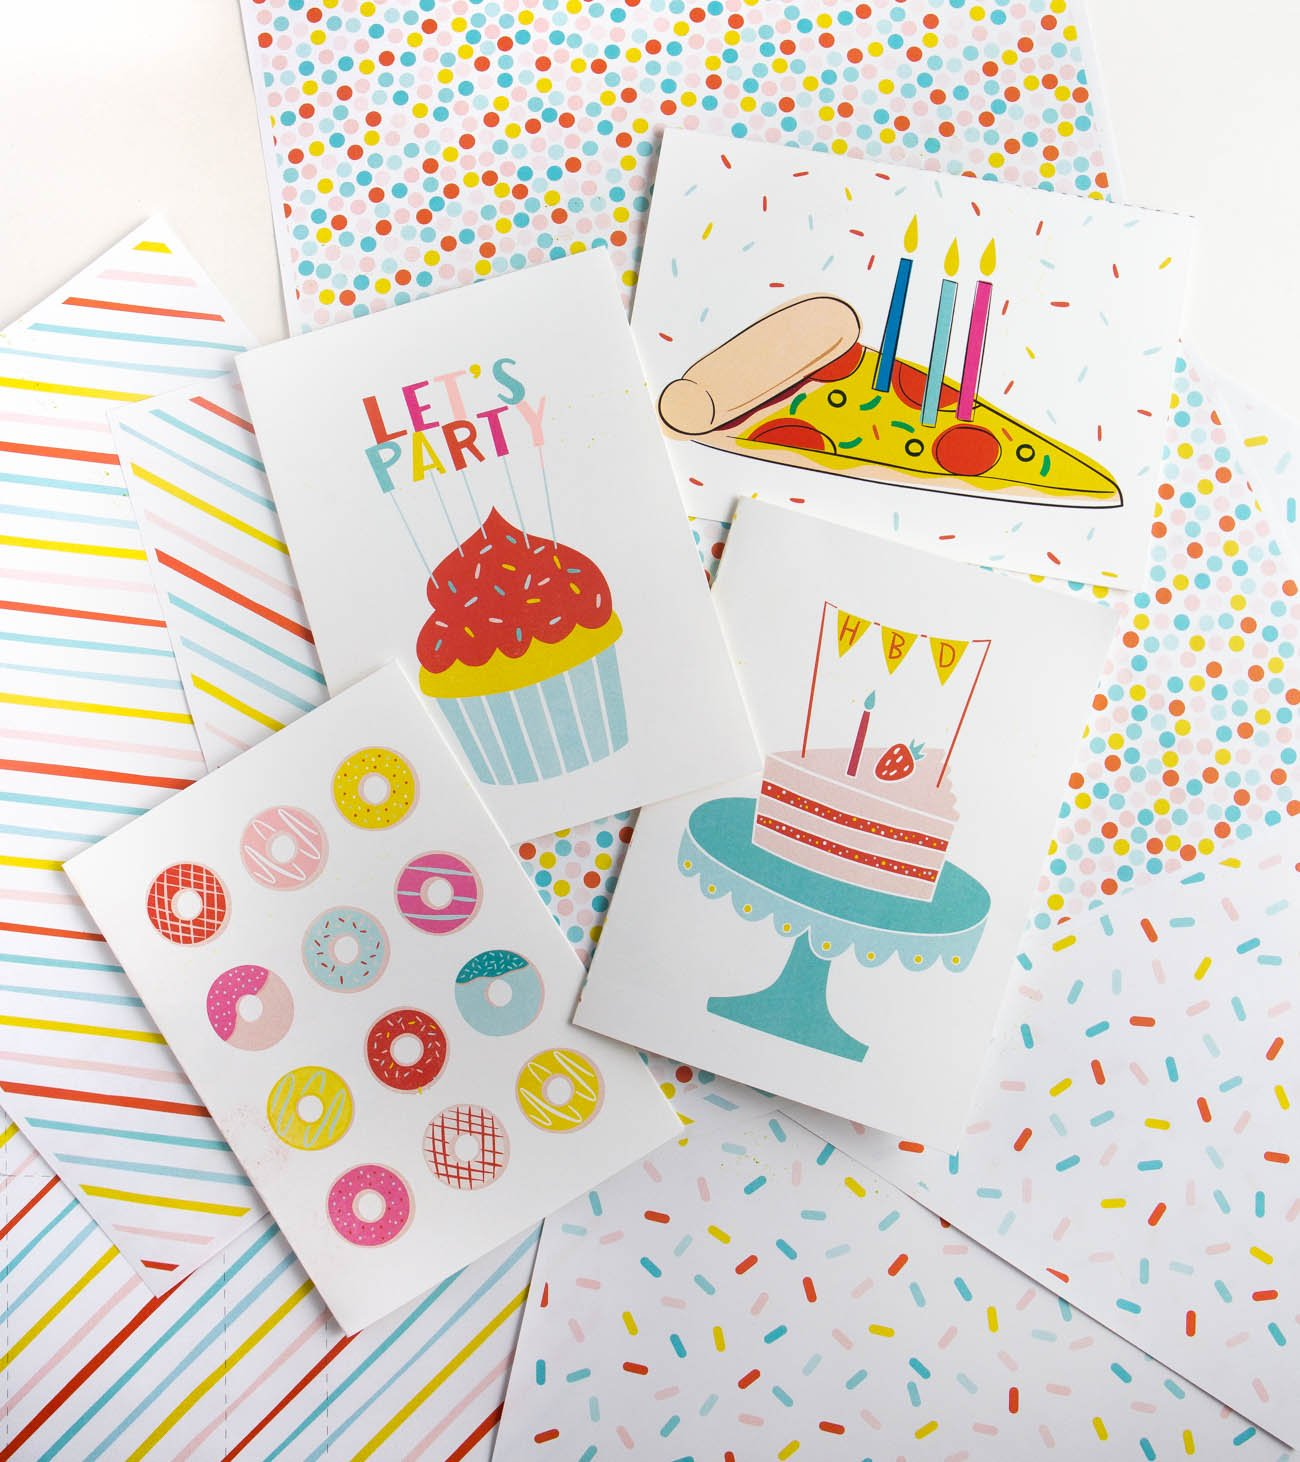 image about Free Printable Birthday Cards for Adults known as Donut Printable Birthday Card - Layout Take in Repeat